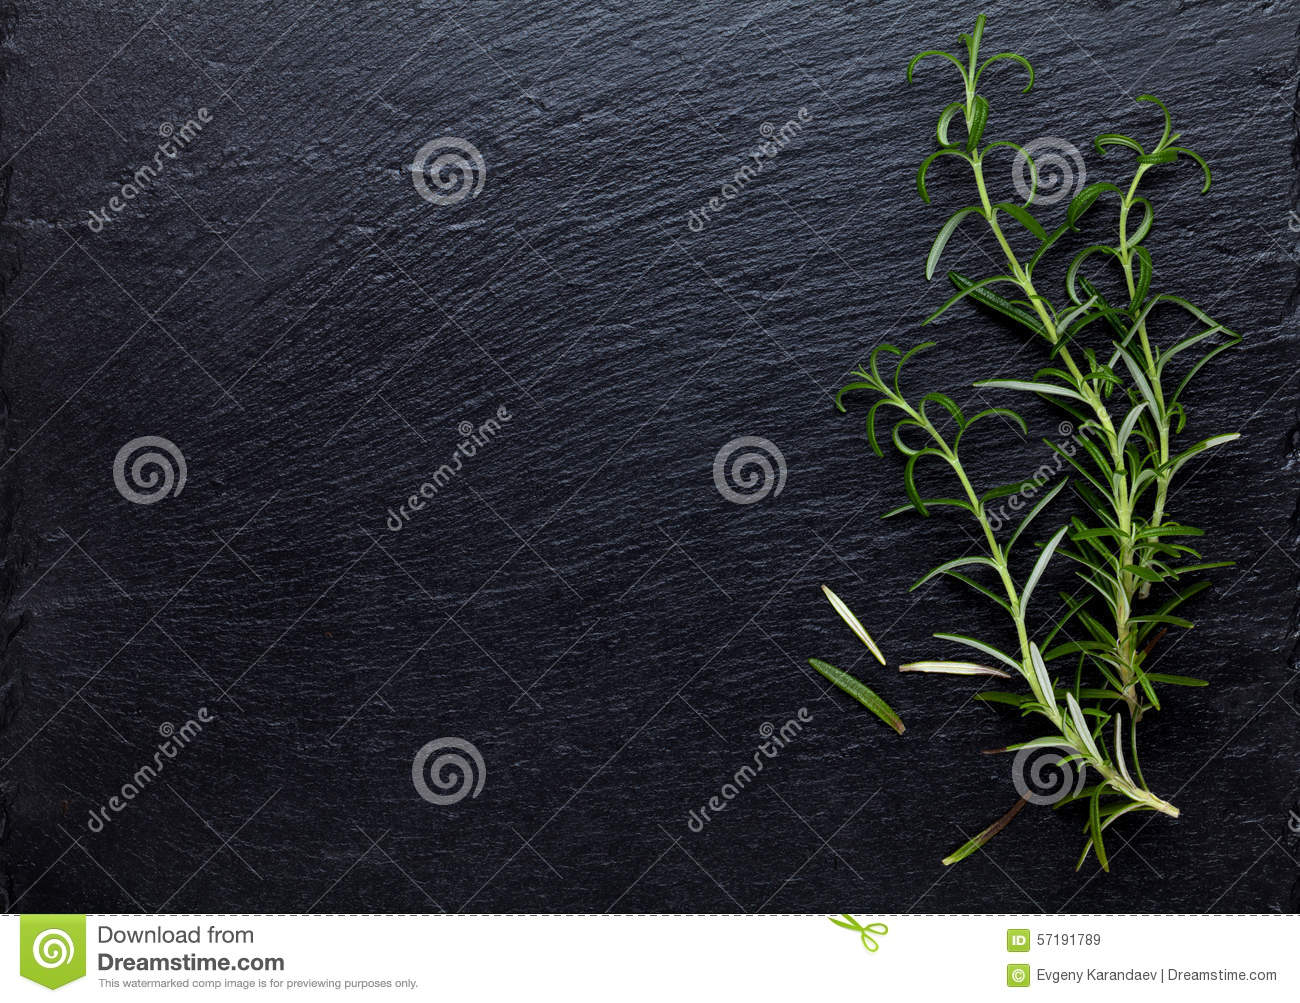 Herbe de Rosemary sur la table en pierre